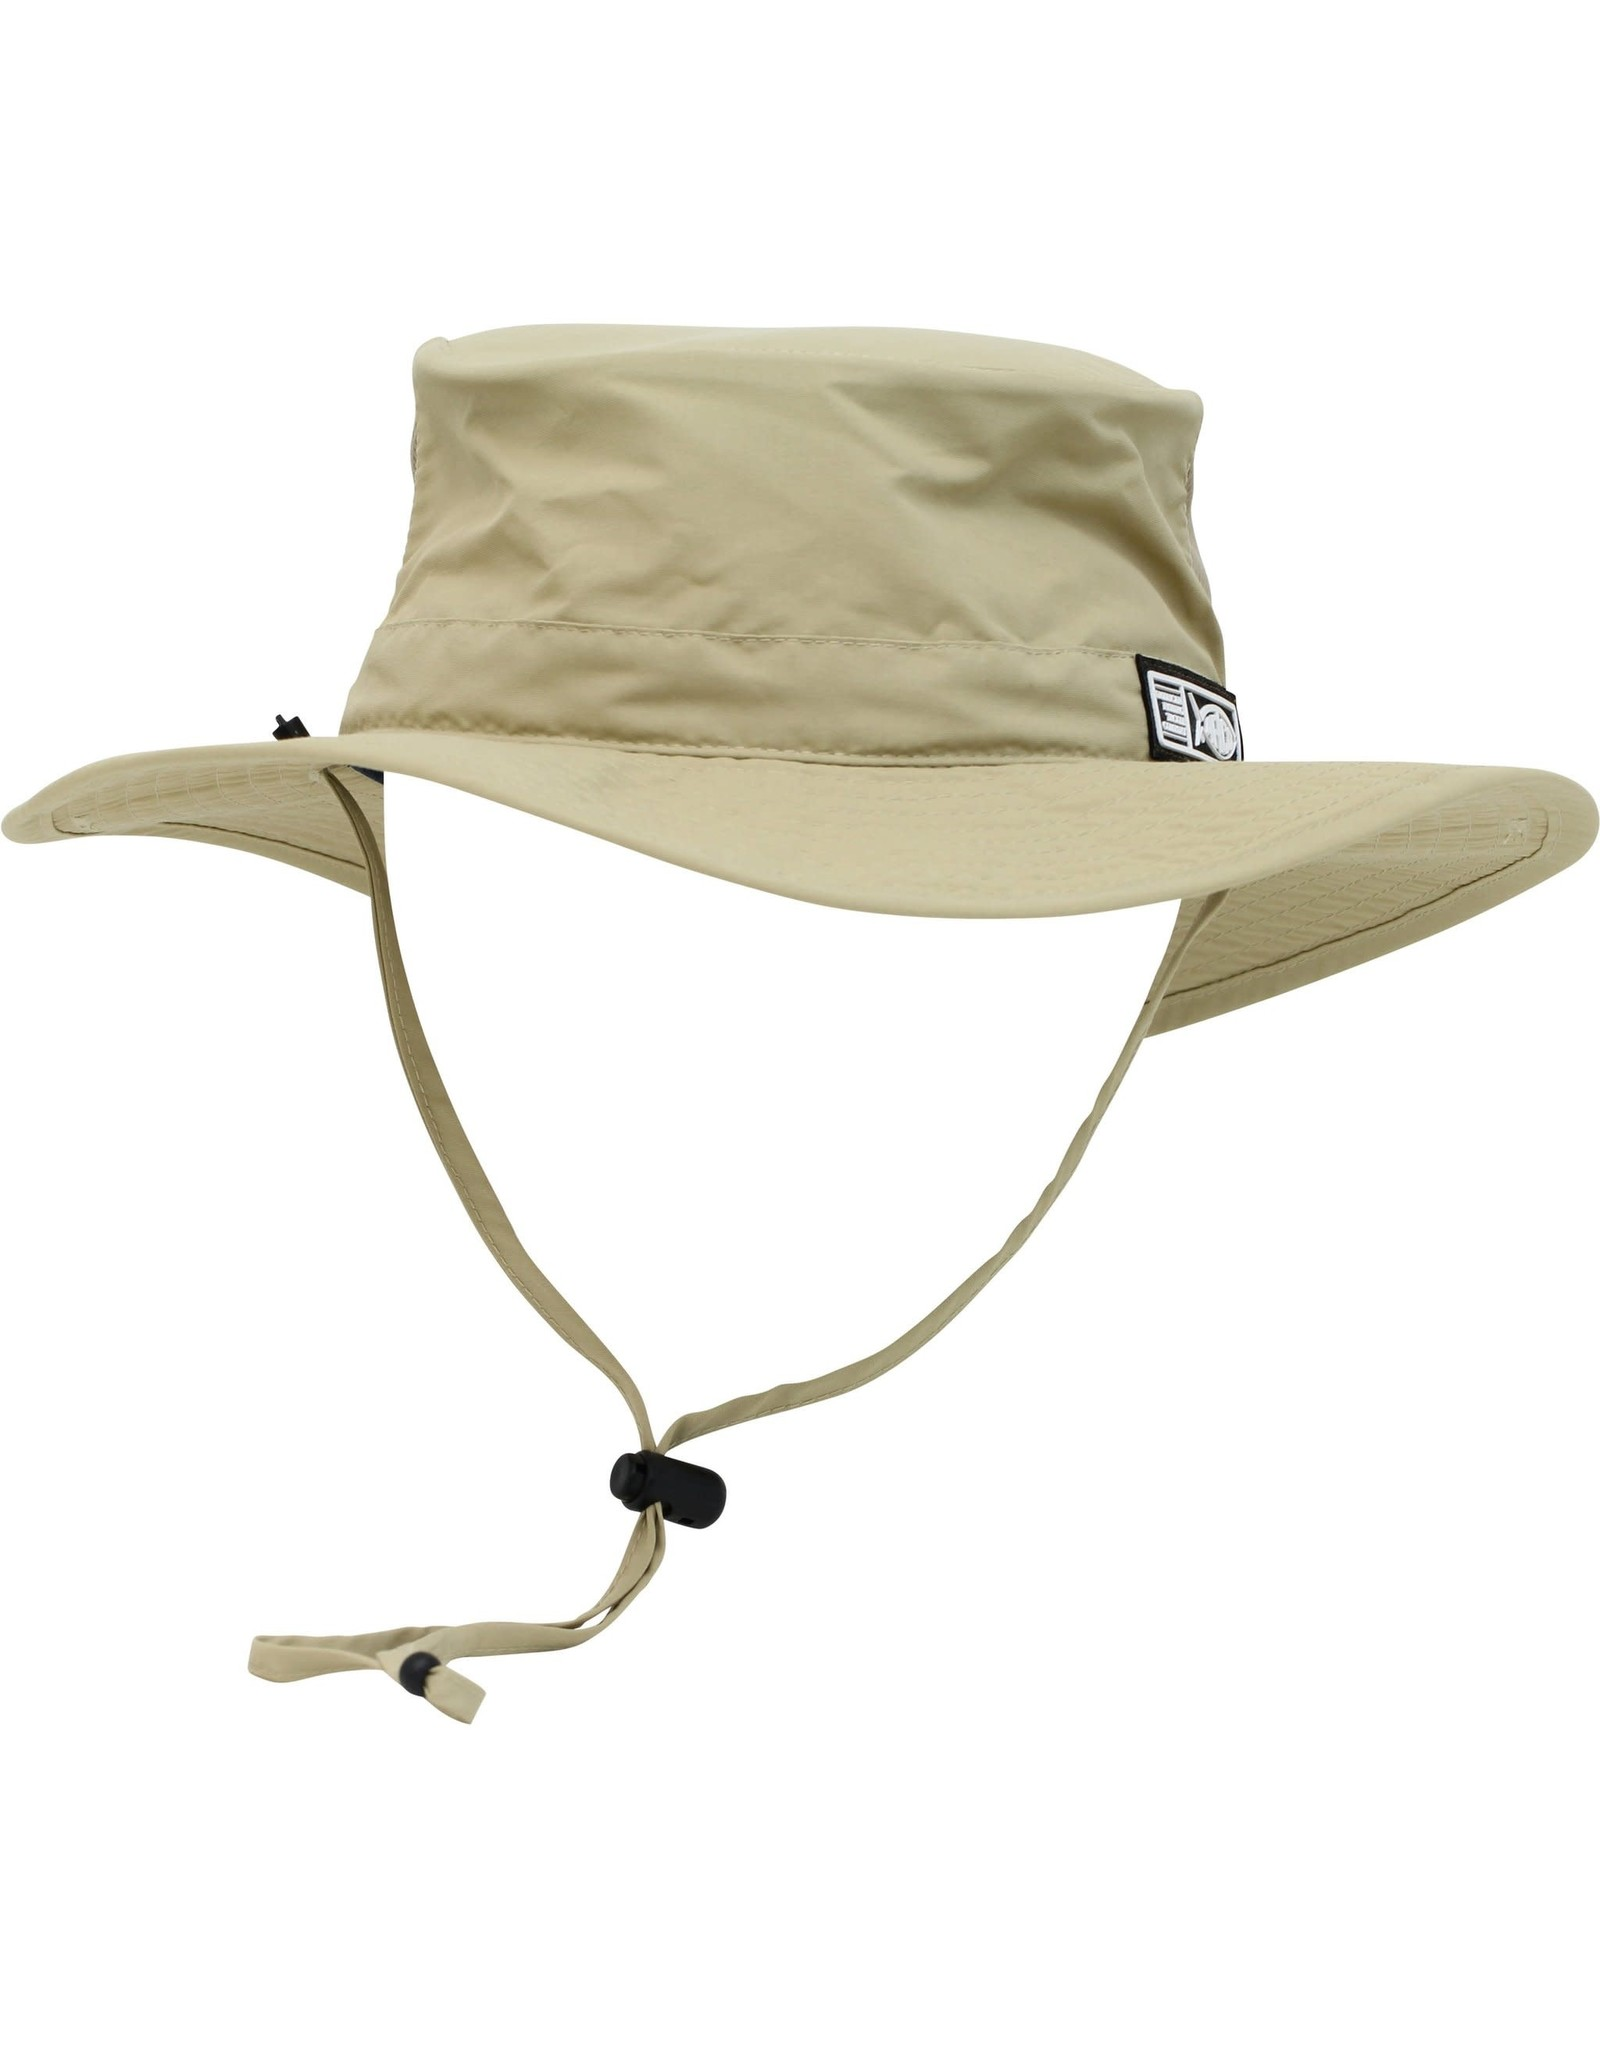 AFTCO AFTCO Tracker Booney Hat